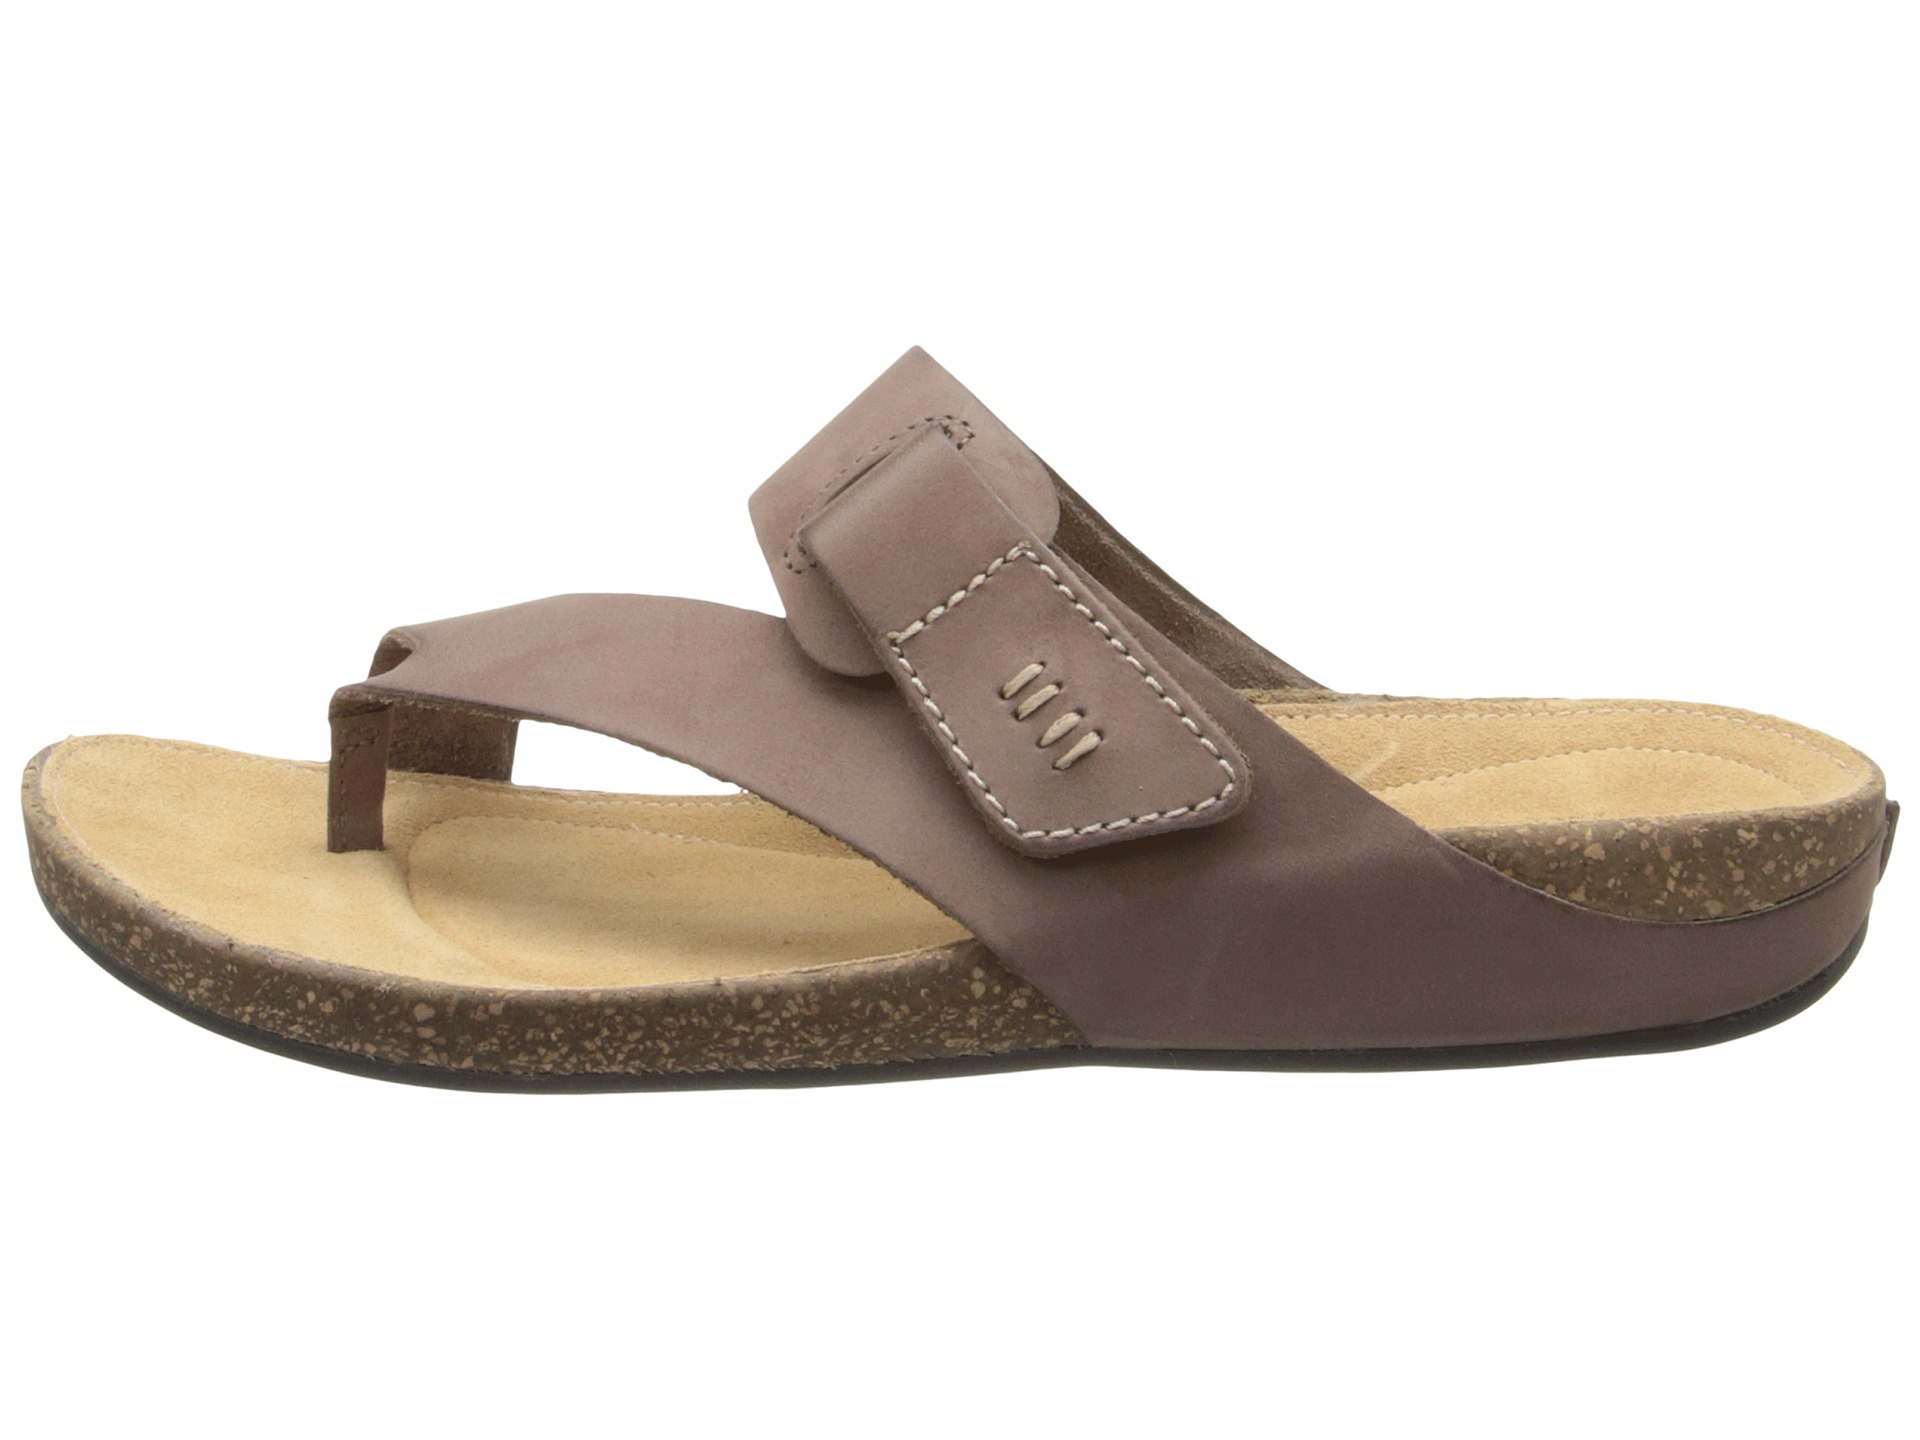 83477e7a18a1 Lyst - Clarks Perri Coast in Brown